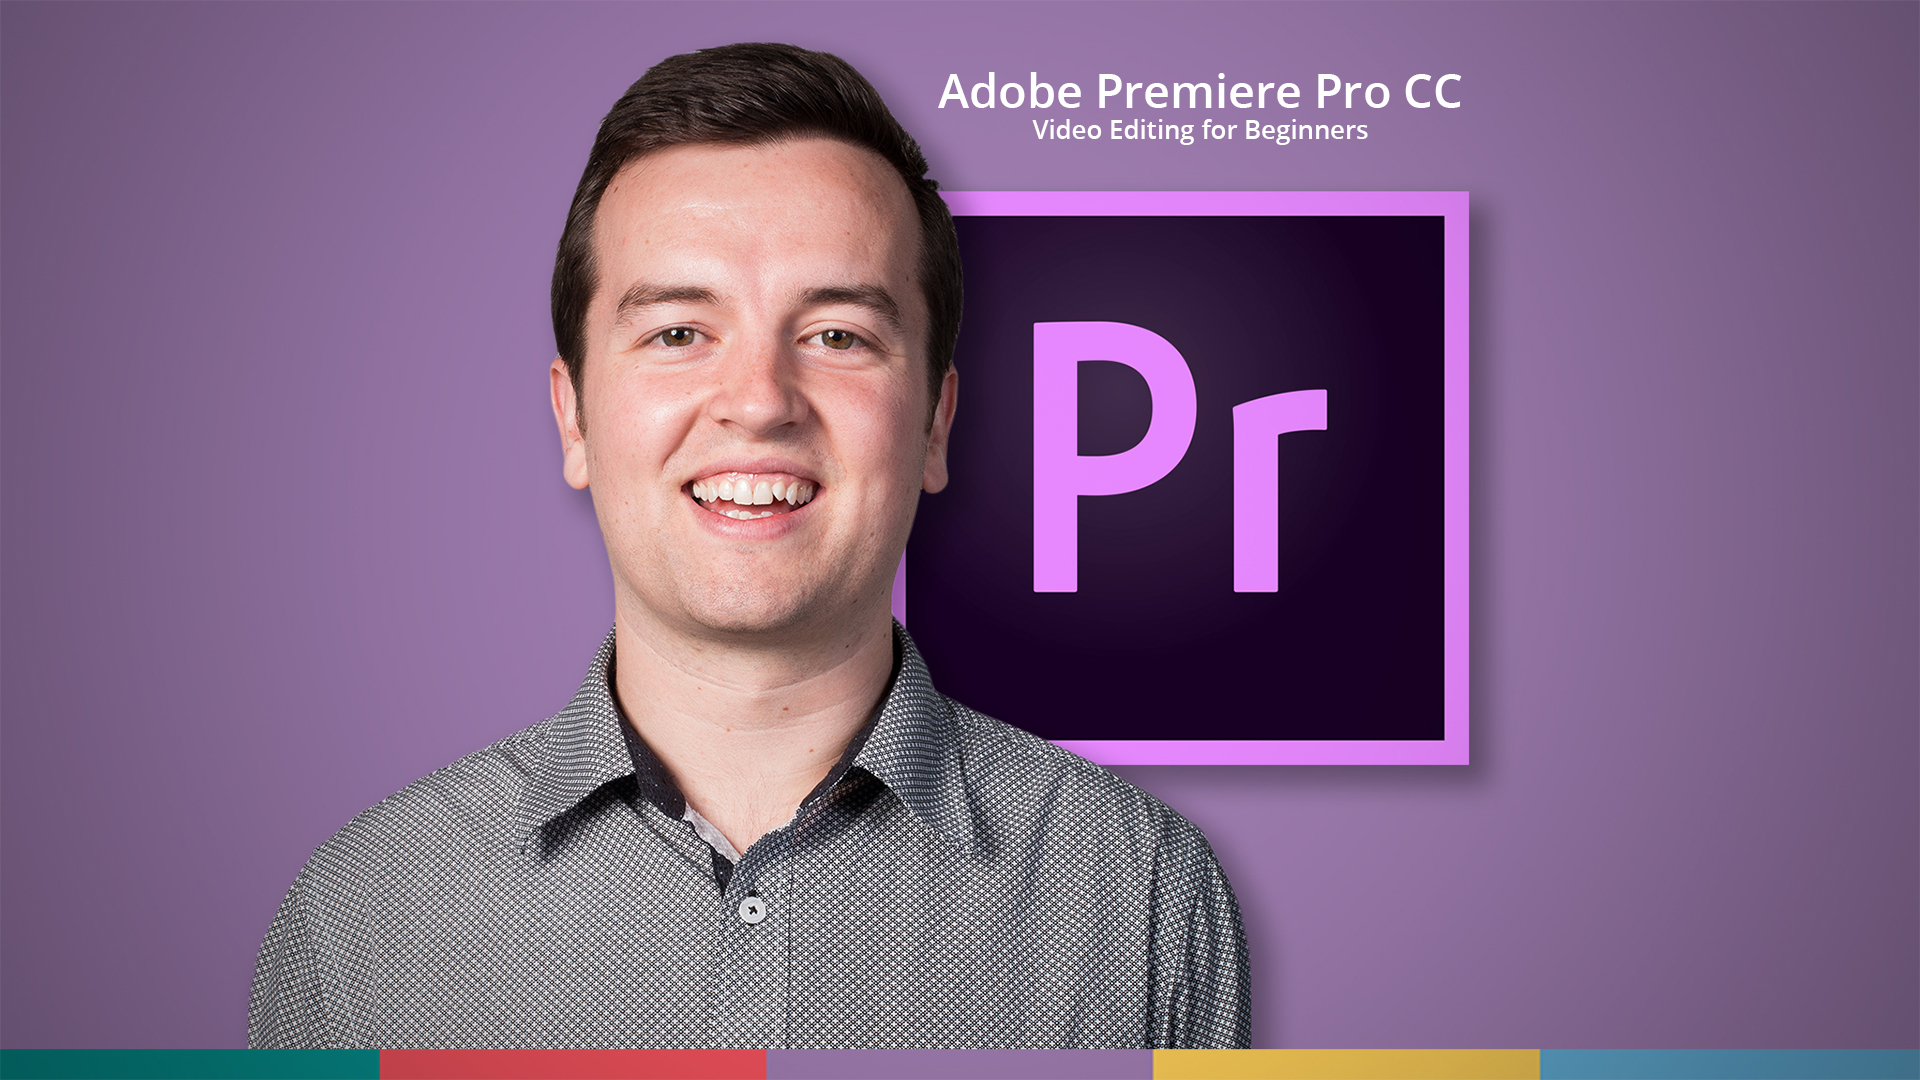 Adobe Premiere Pro CC Video Editing for Beginners (Online Course) [Online Code] by Video School Online